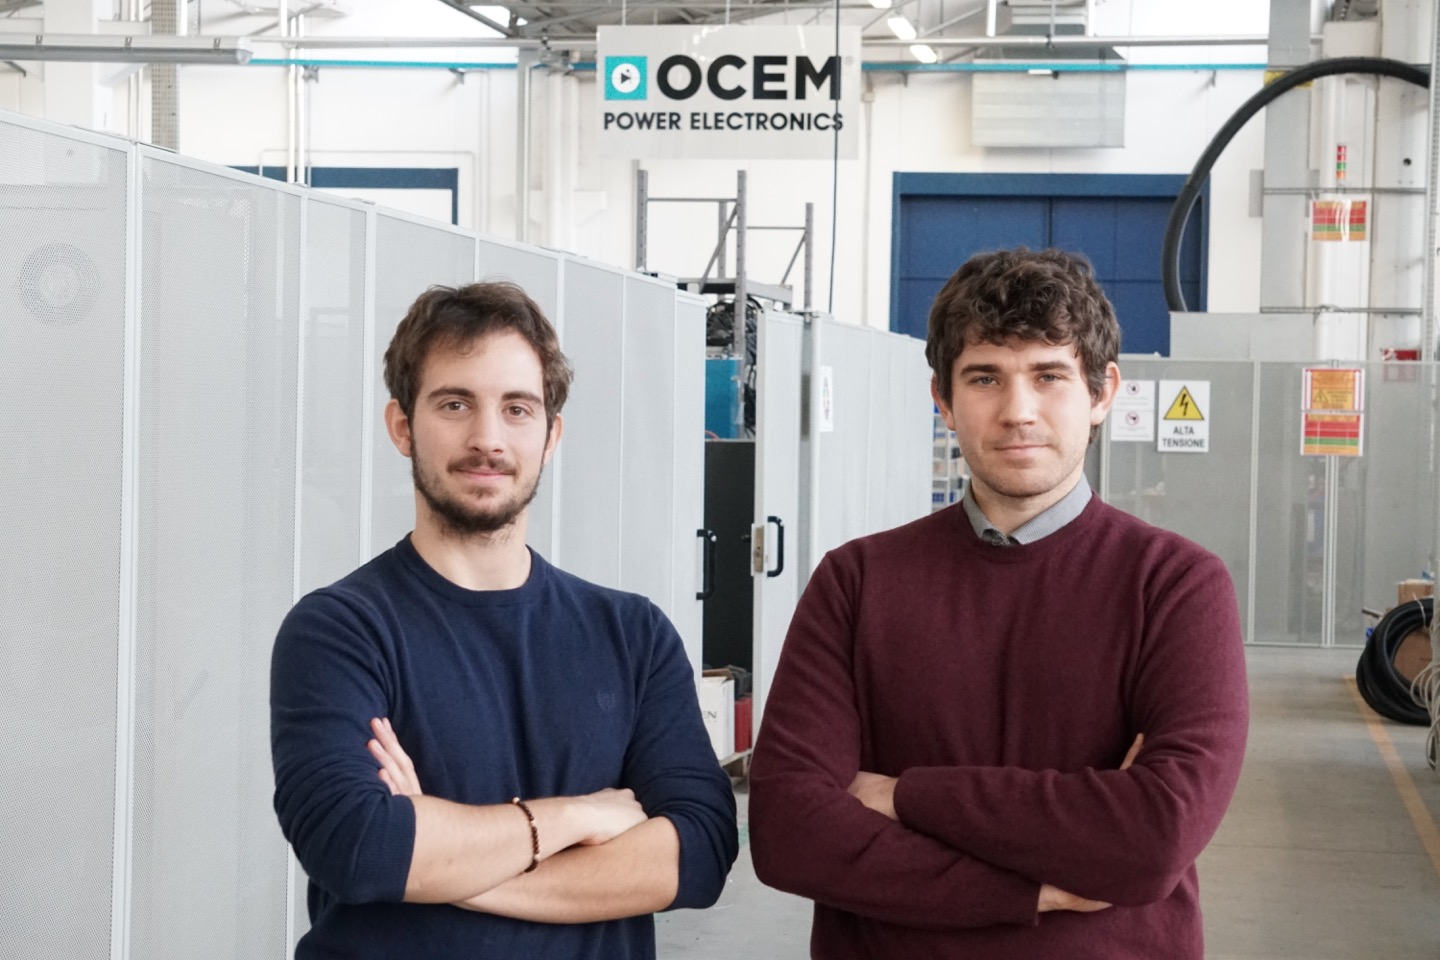 Young engineers seek to harness renewable energy with doctoral research at OCEM